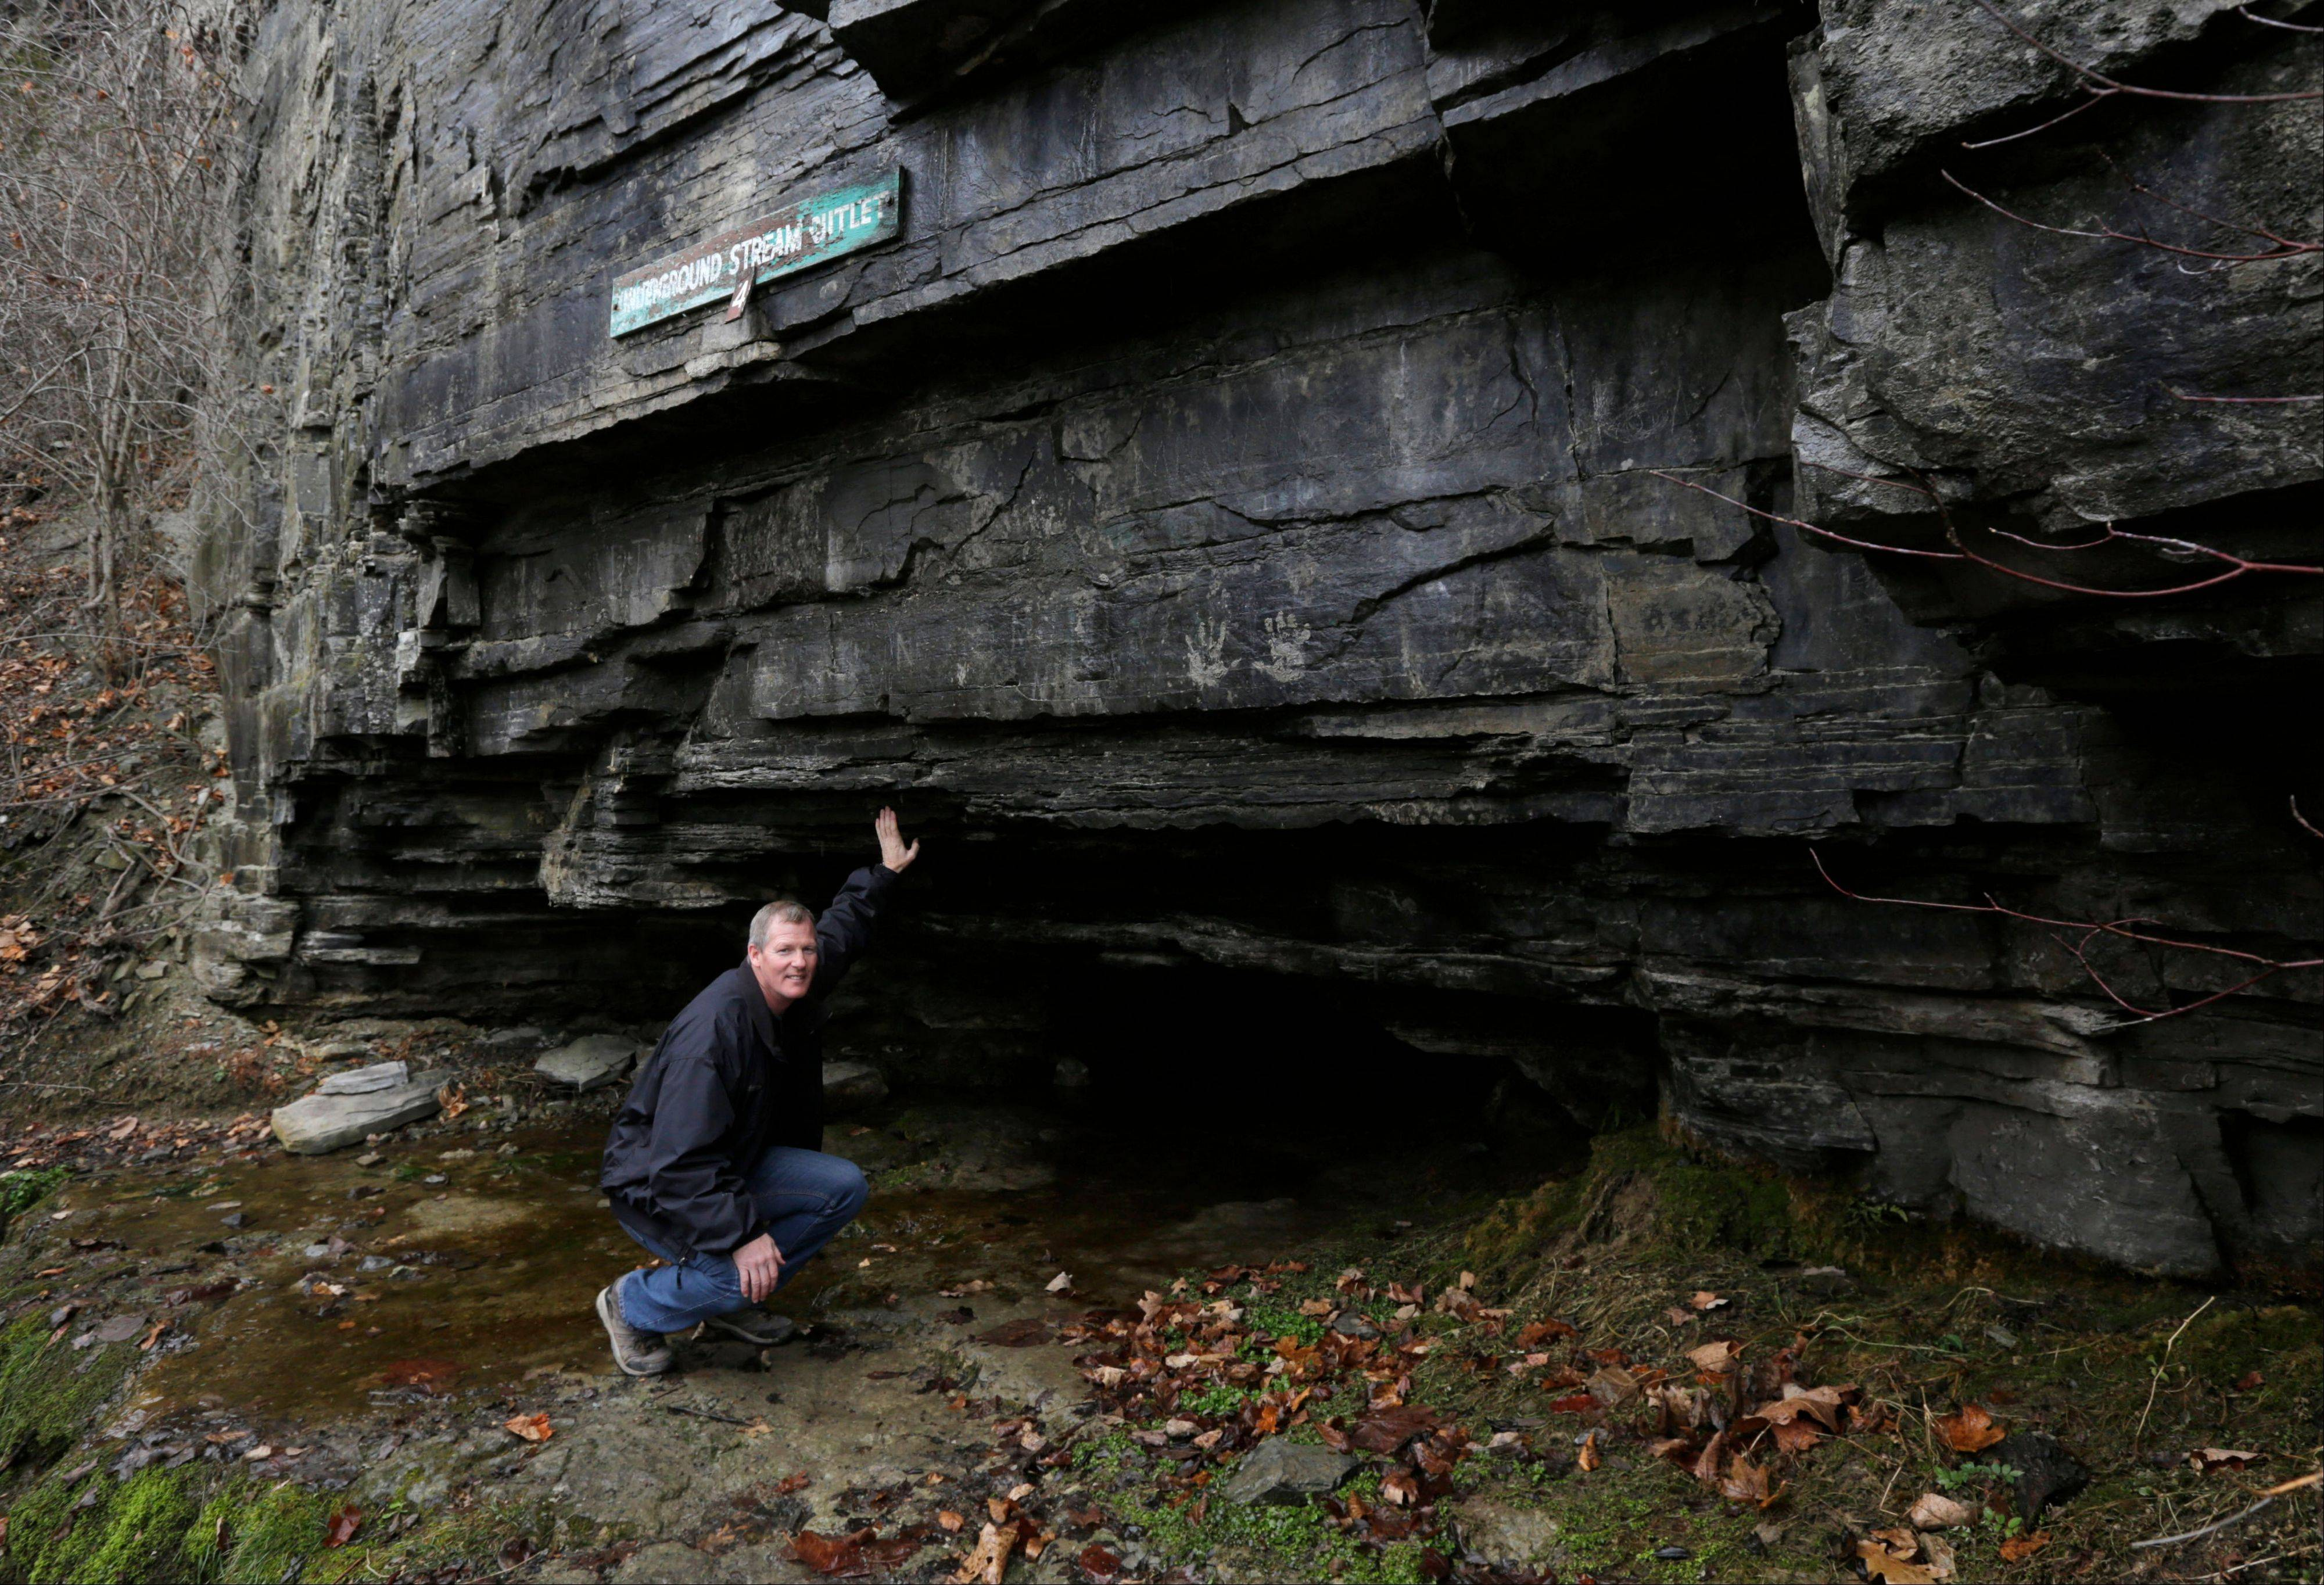 Chris Fallon, manager at John Boyd Thacher State Park, shows the entrance to Fool's Crawl Cave in Guilderland, N.Y.